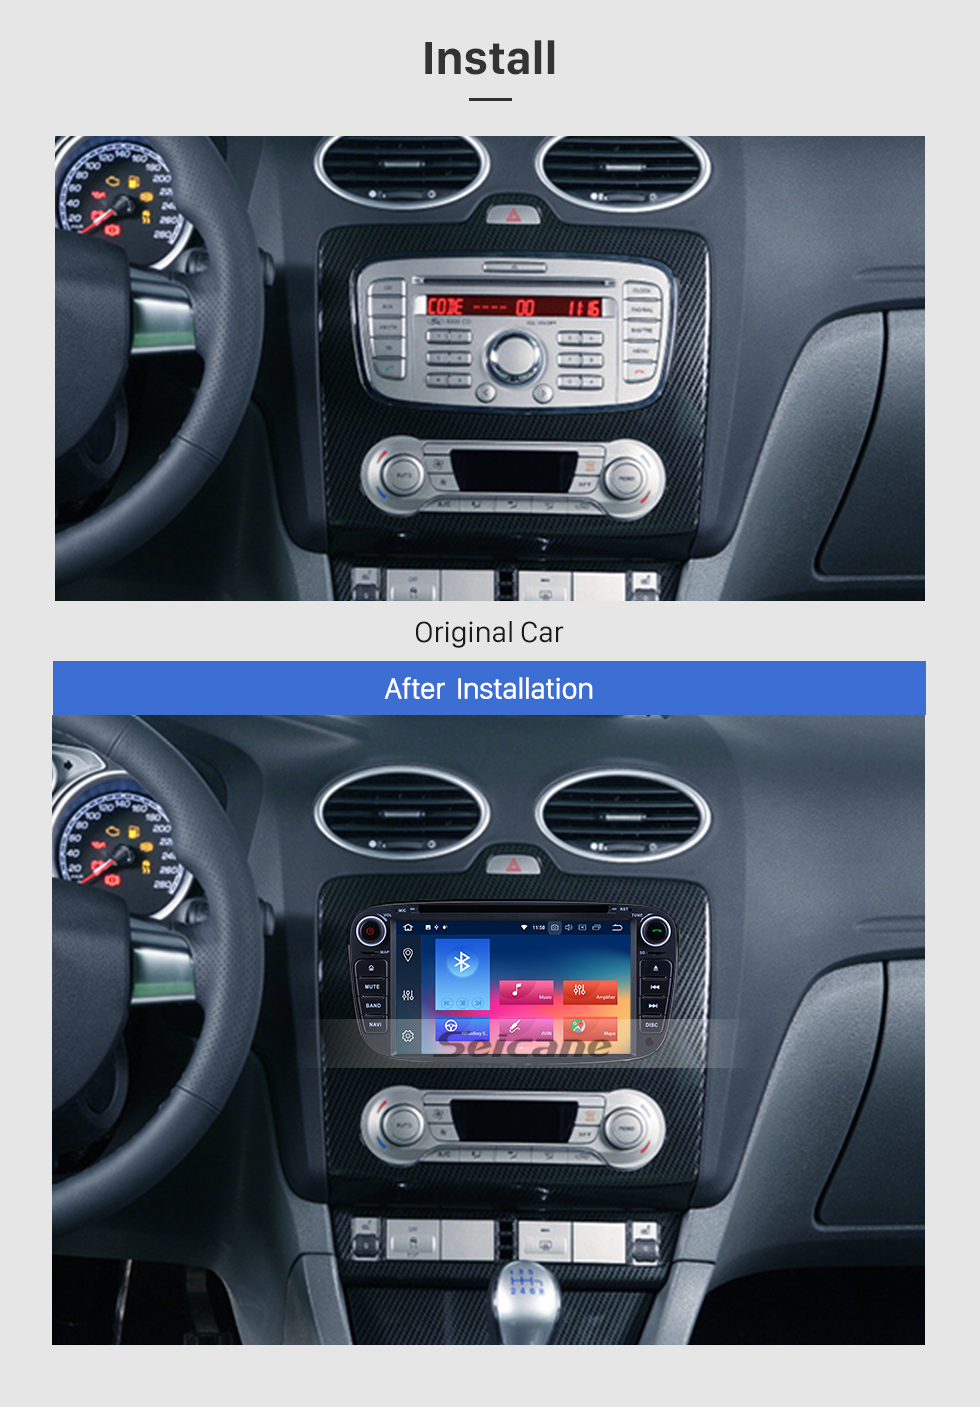 Seicane Android 9.0 2007-2011 FORD MONDEO Radio GPS Car DVD Player with 3G WiFi Bluetooth Mirror Link OBD2 Backup Camera HD 1080P Video Steering Wheel Control MP3 AUX